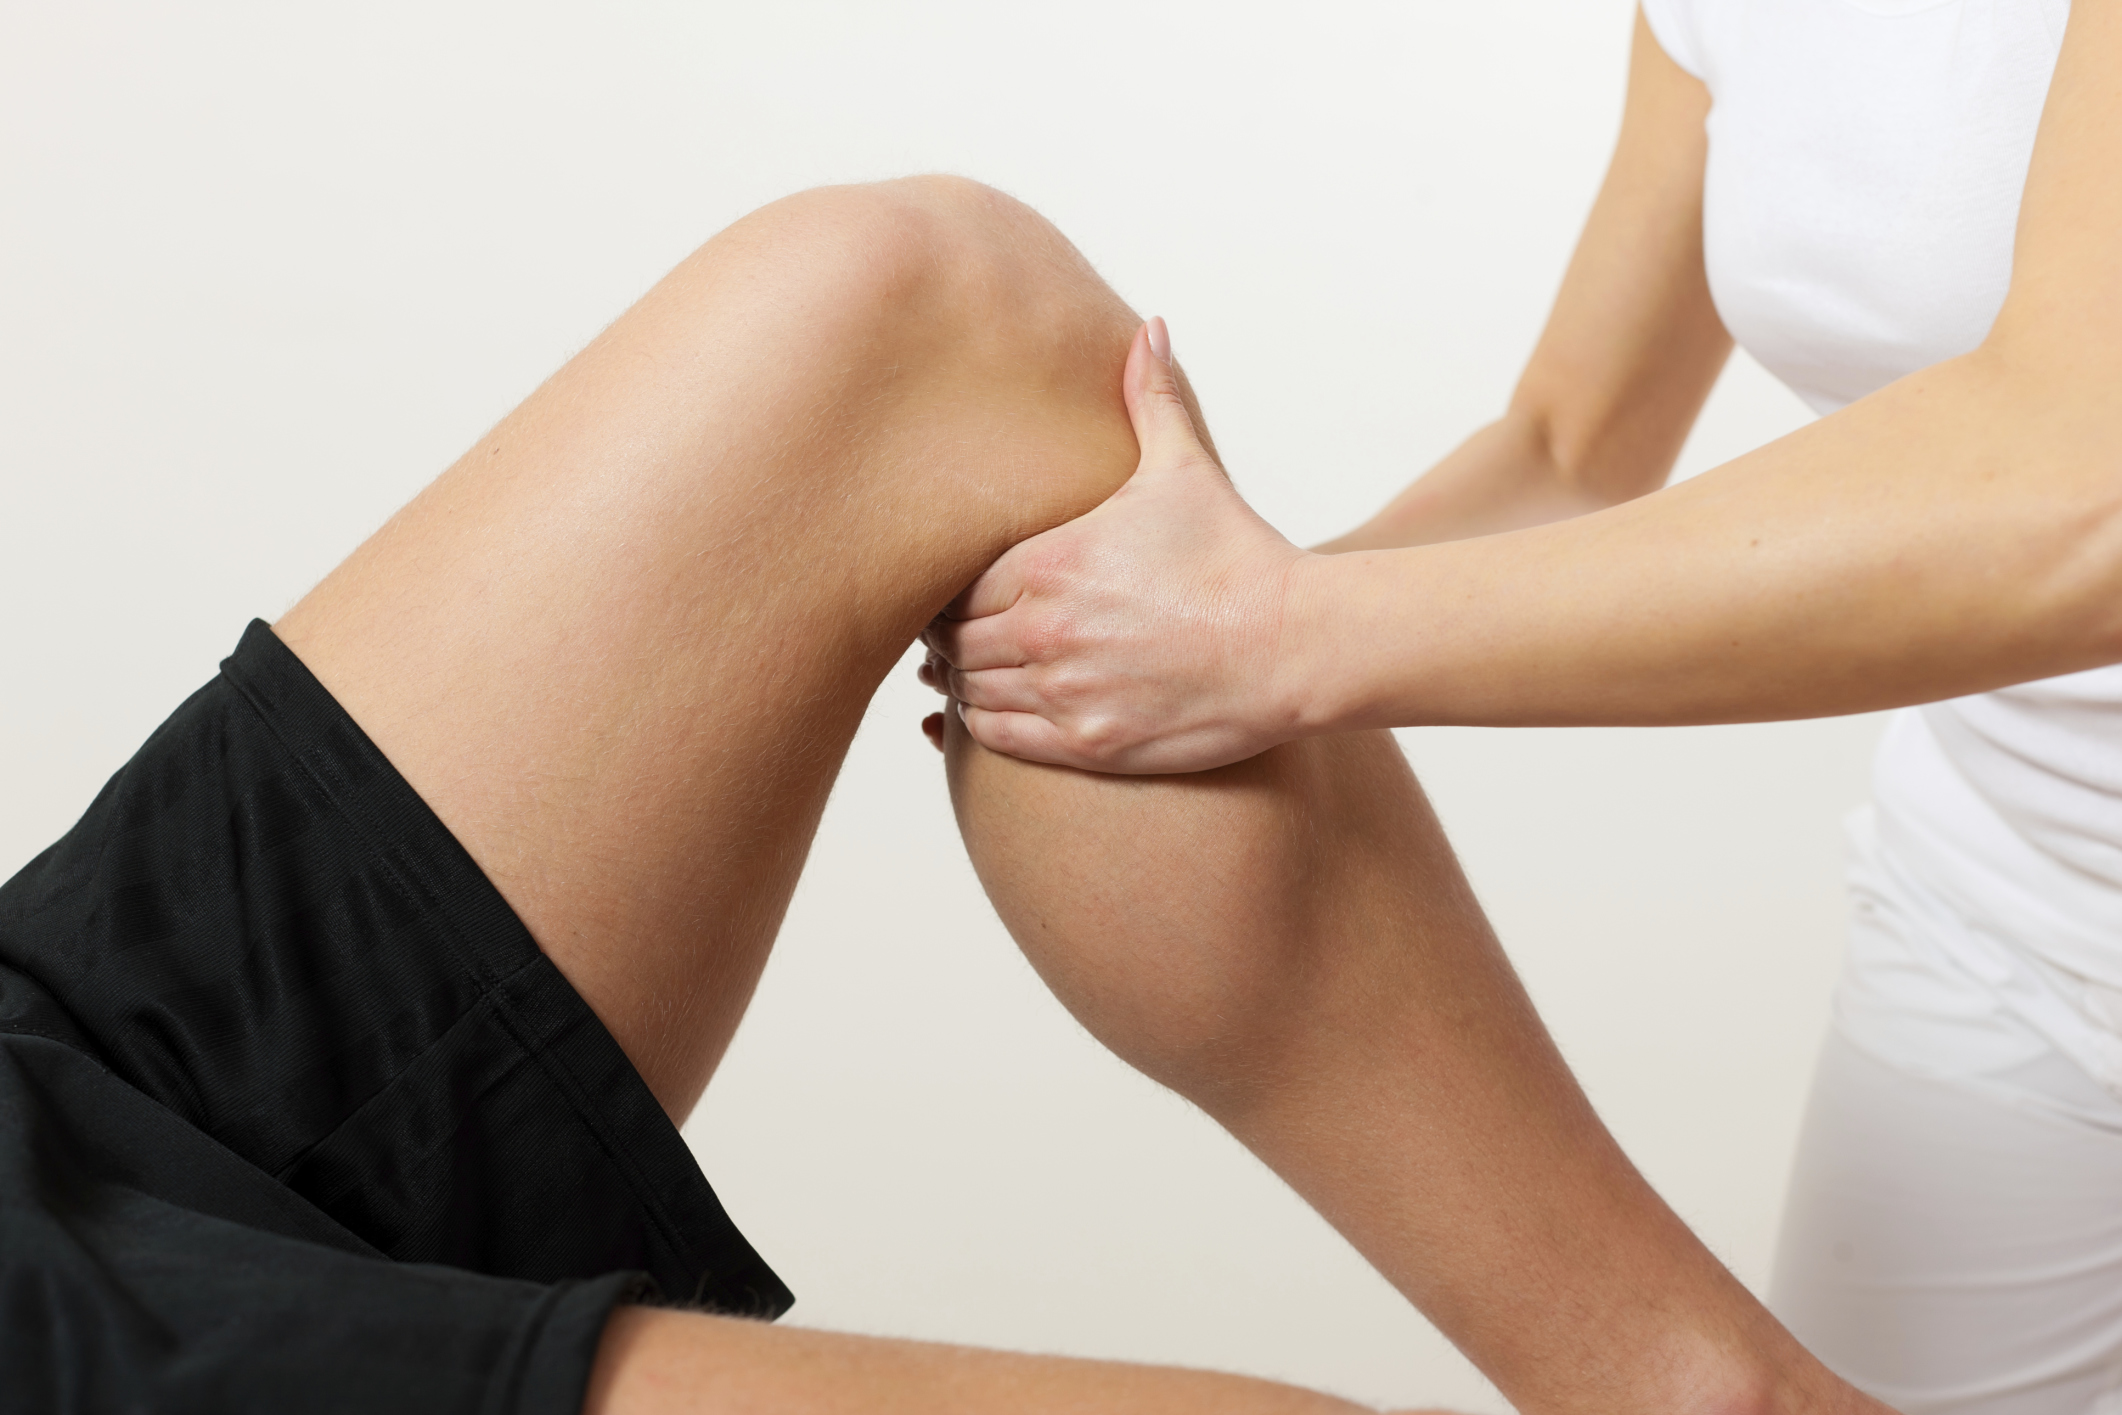 Manual physical therapy to improve your joint and soft tissue mobility.